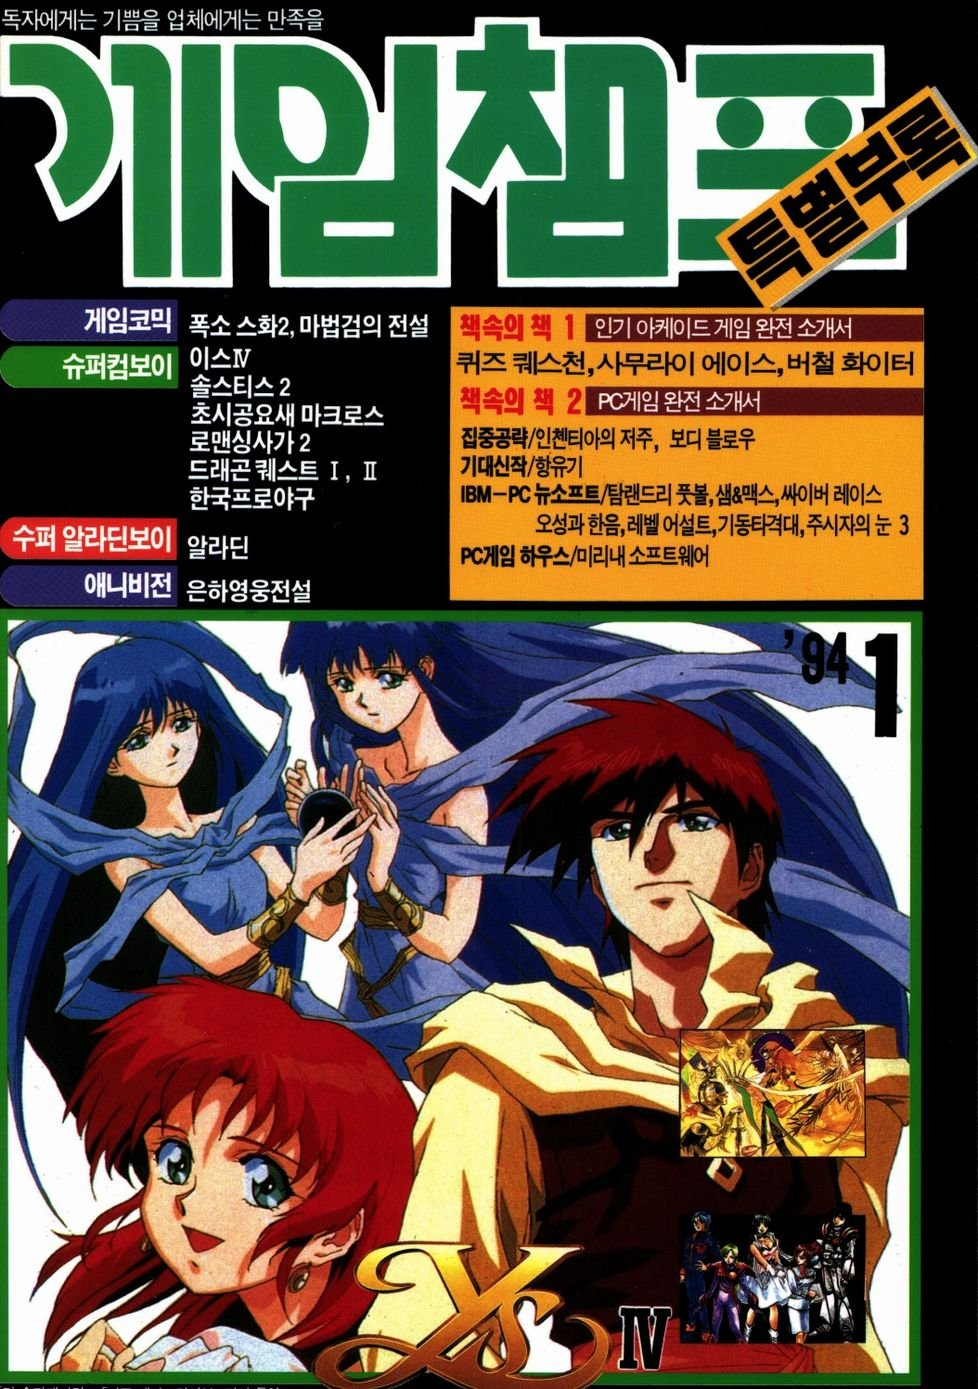 Game Champ Issue 014 supplement (January 1994)